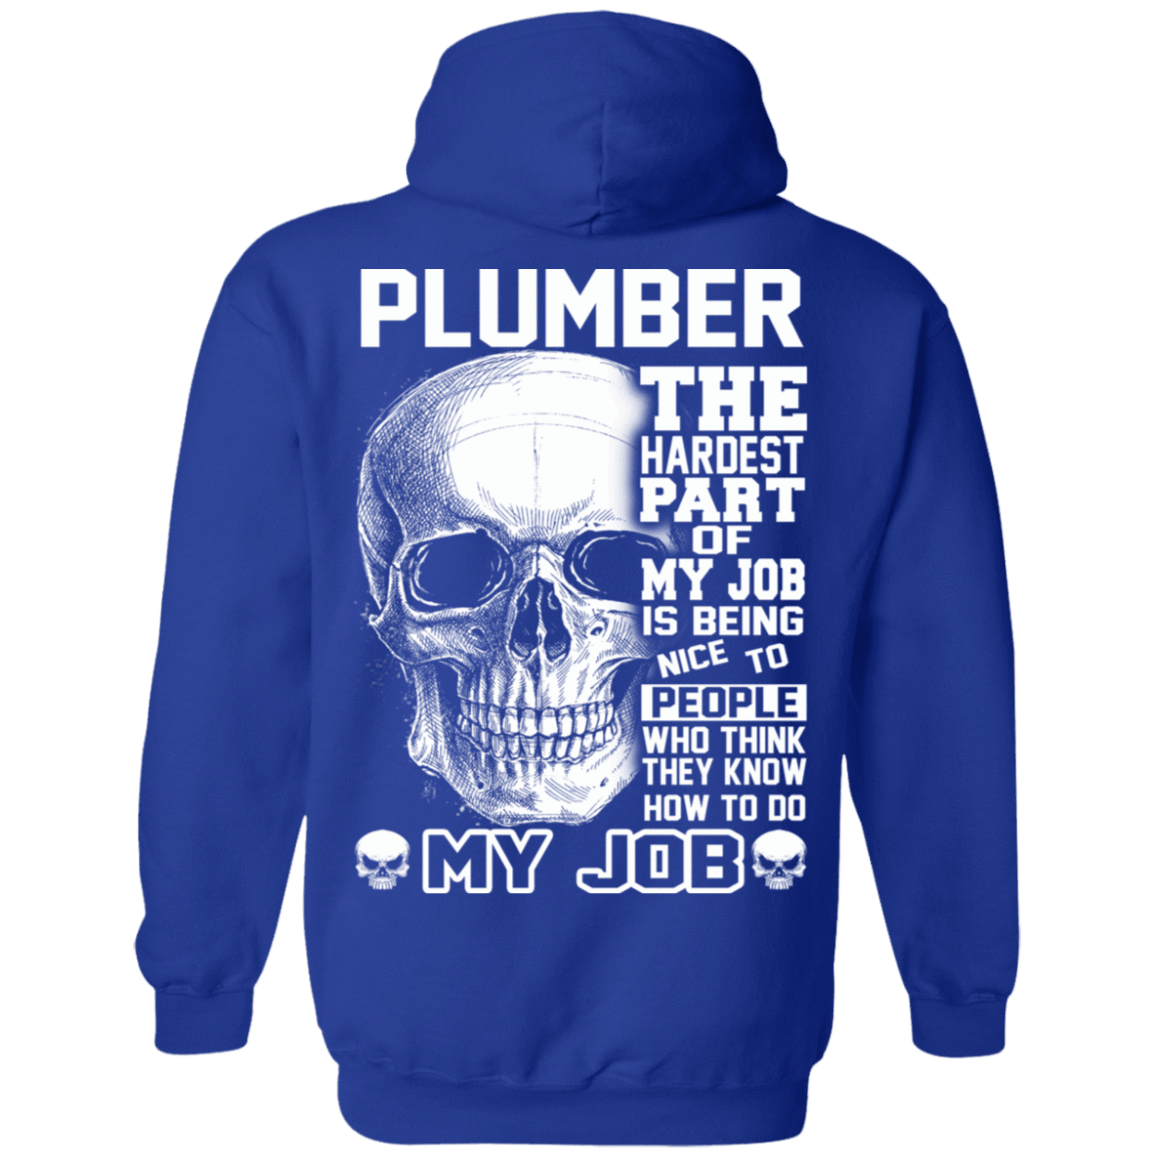 Plumber The Hardest Part Of My Job 541-4765-72369943-23175 - Tee Ript